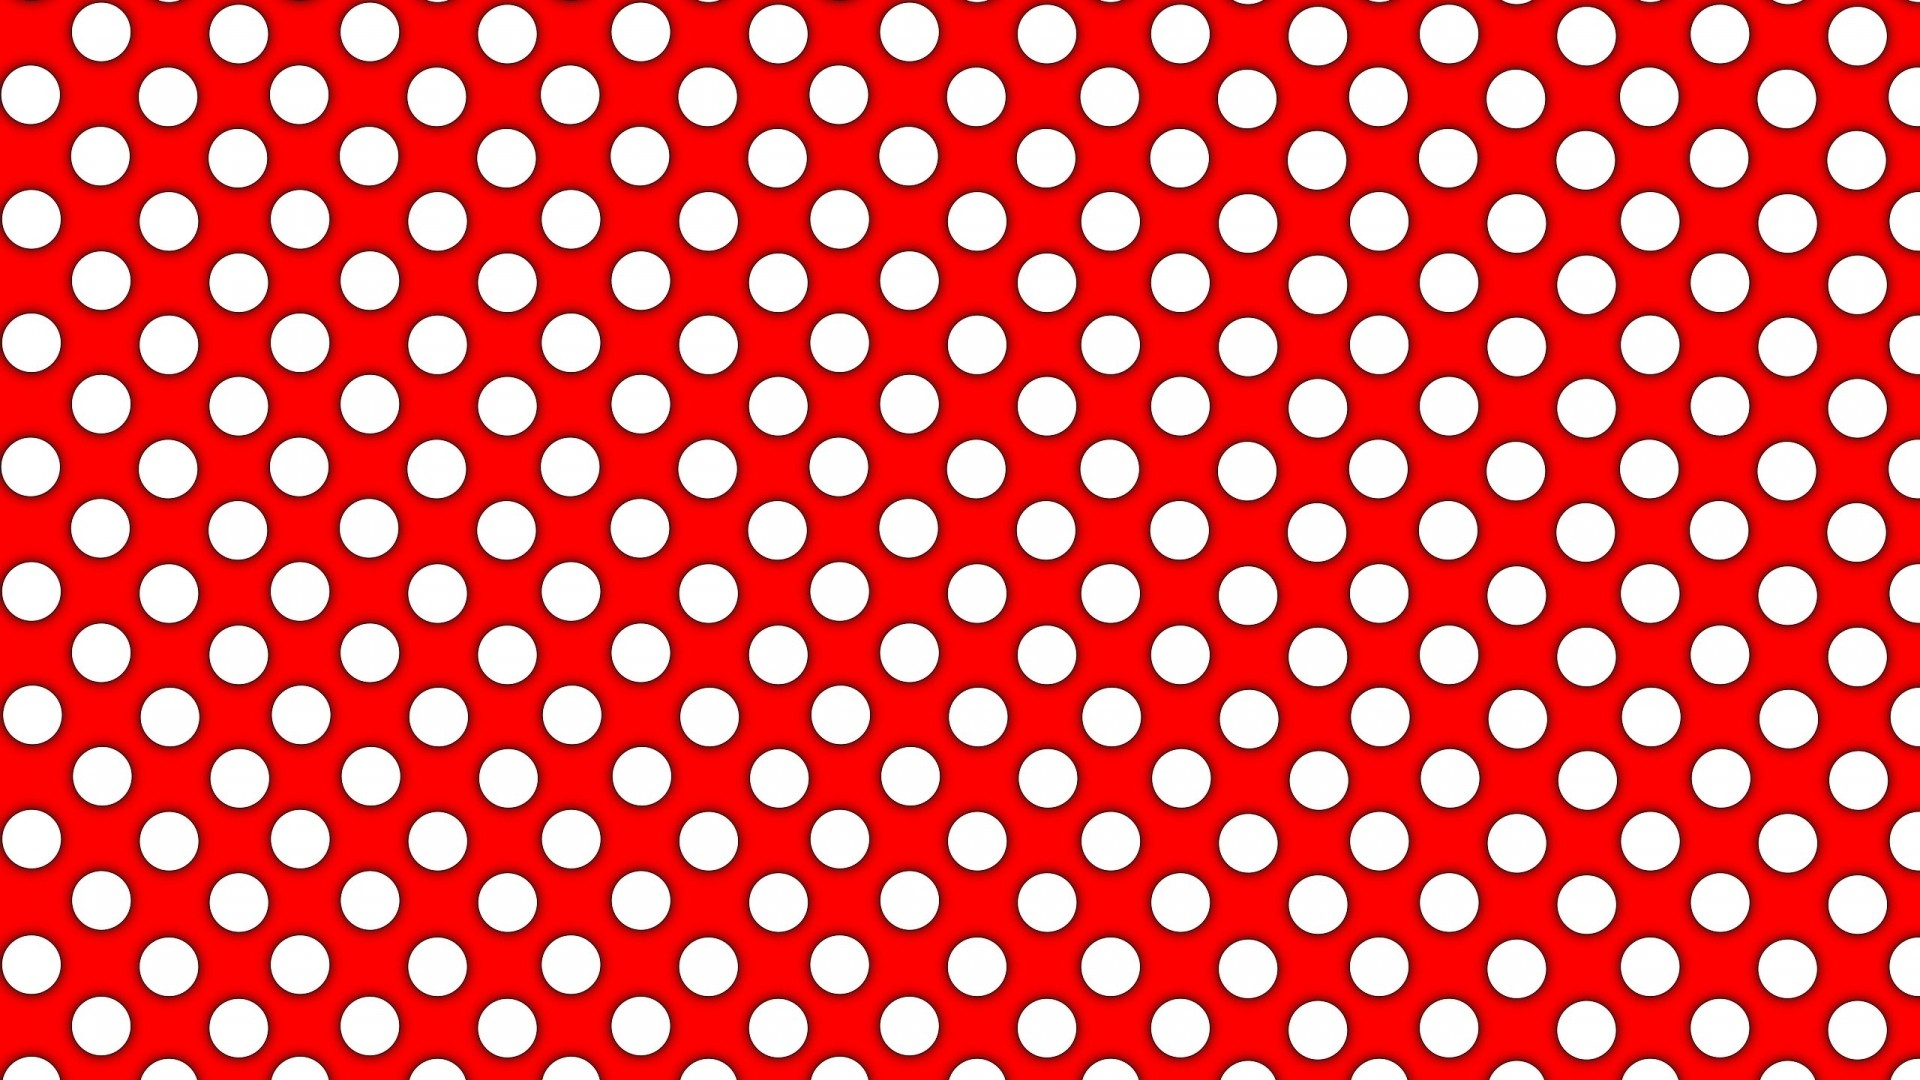 Polka Dot wallpaper photo hd